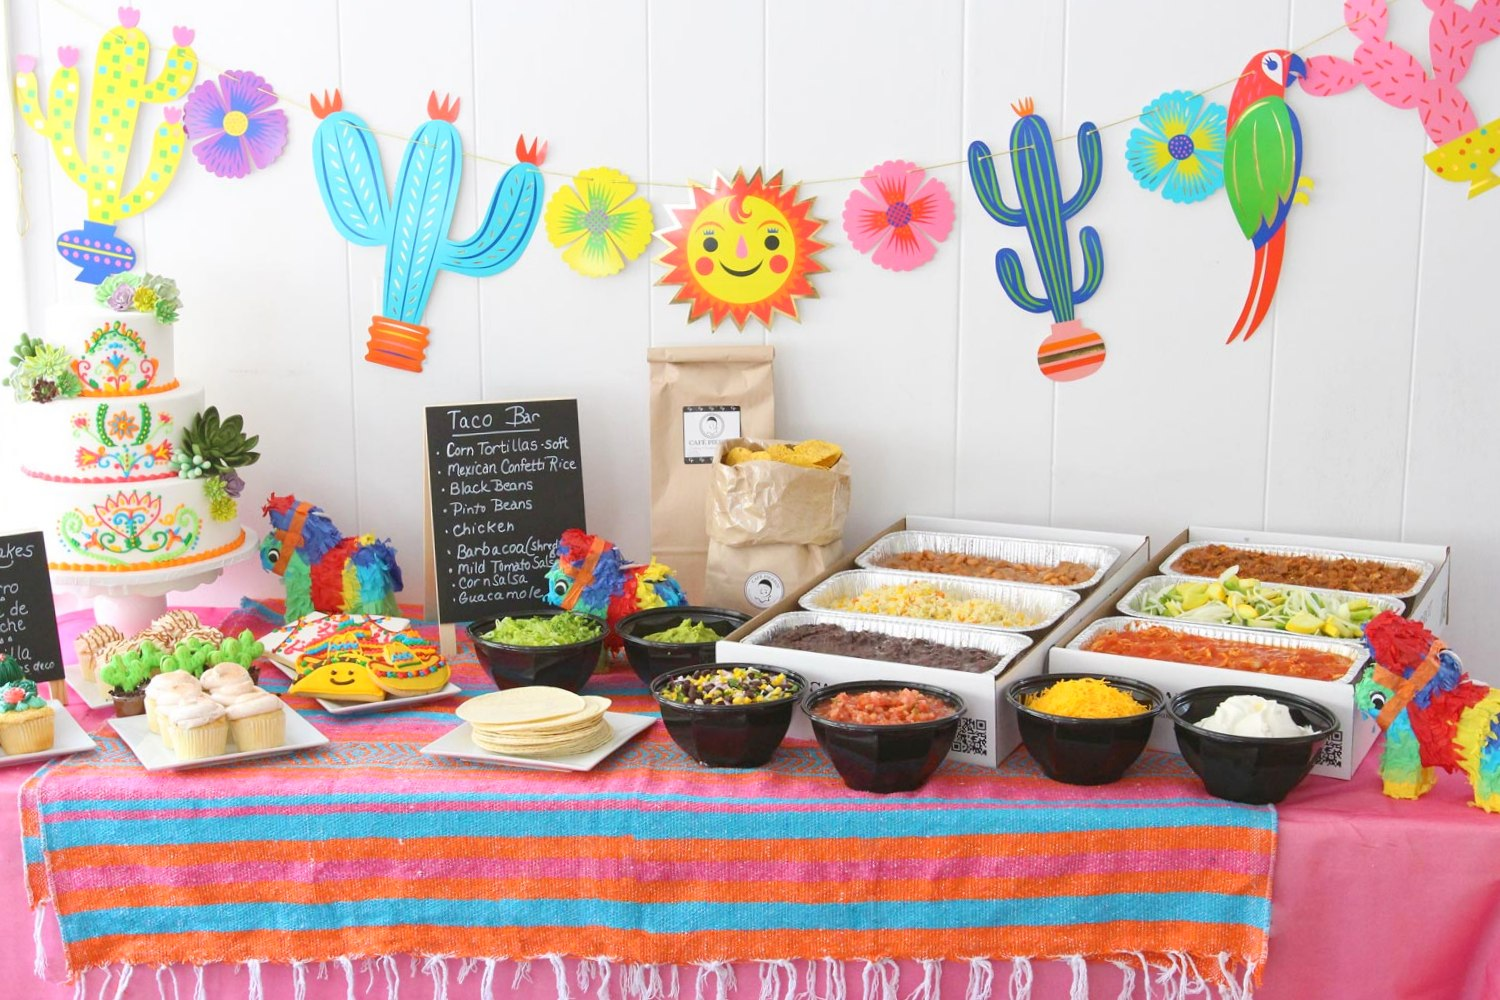 Cinco de Mayo Catering menu with taco bar options